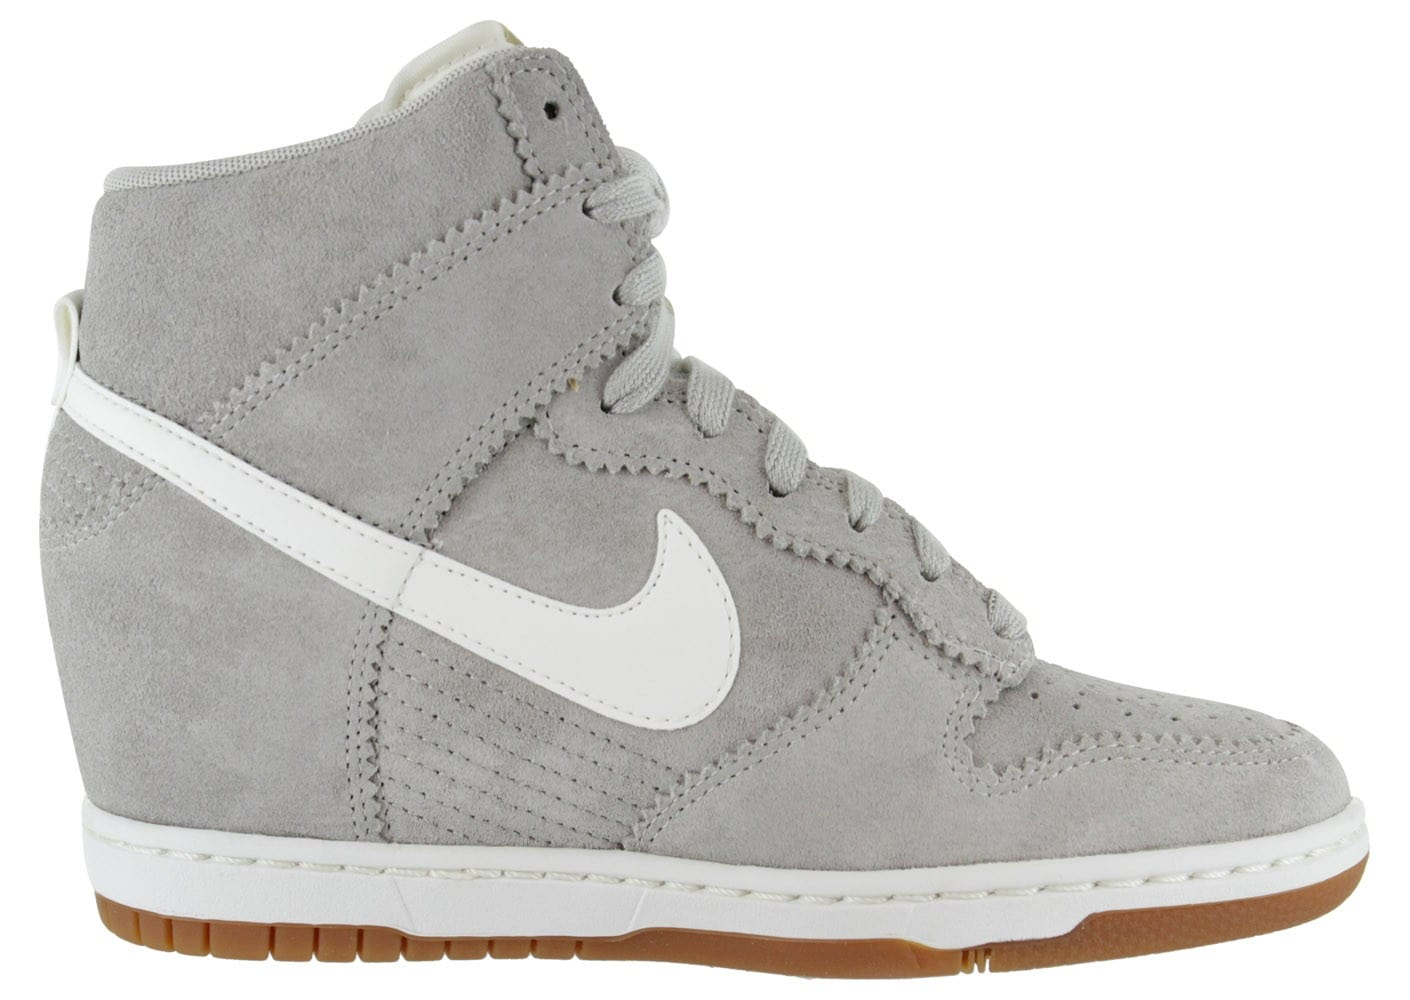 Nike Dunk Sky Grise Chaussures Chaussures Chausport